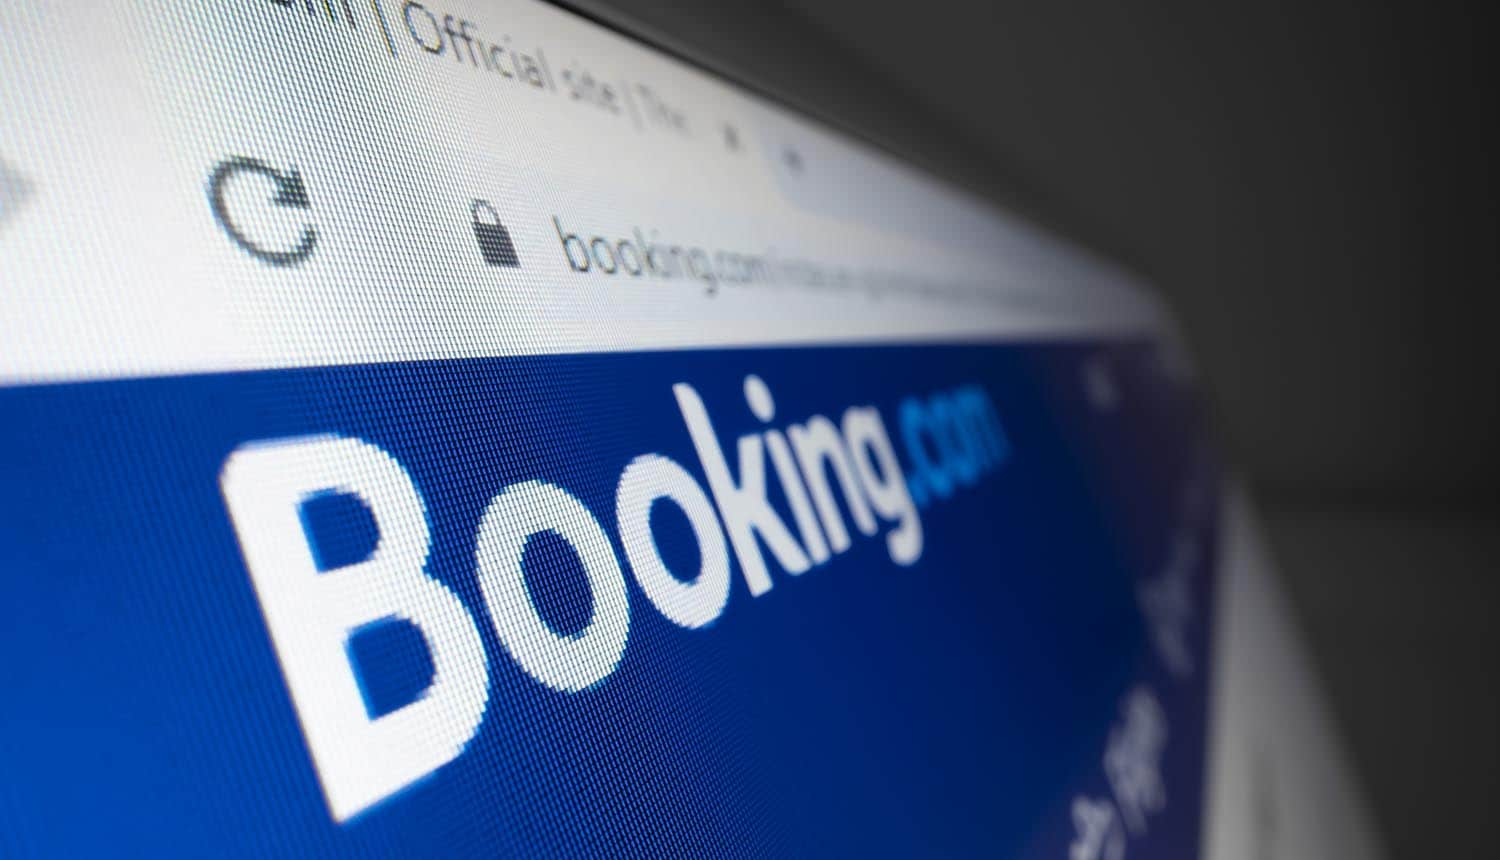 Close-up view of Booking.com logo on its website showing fine due to late data breach notification